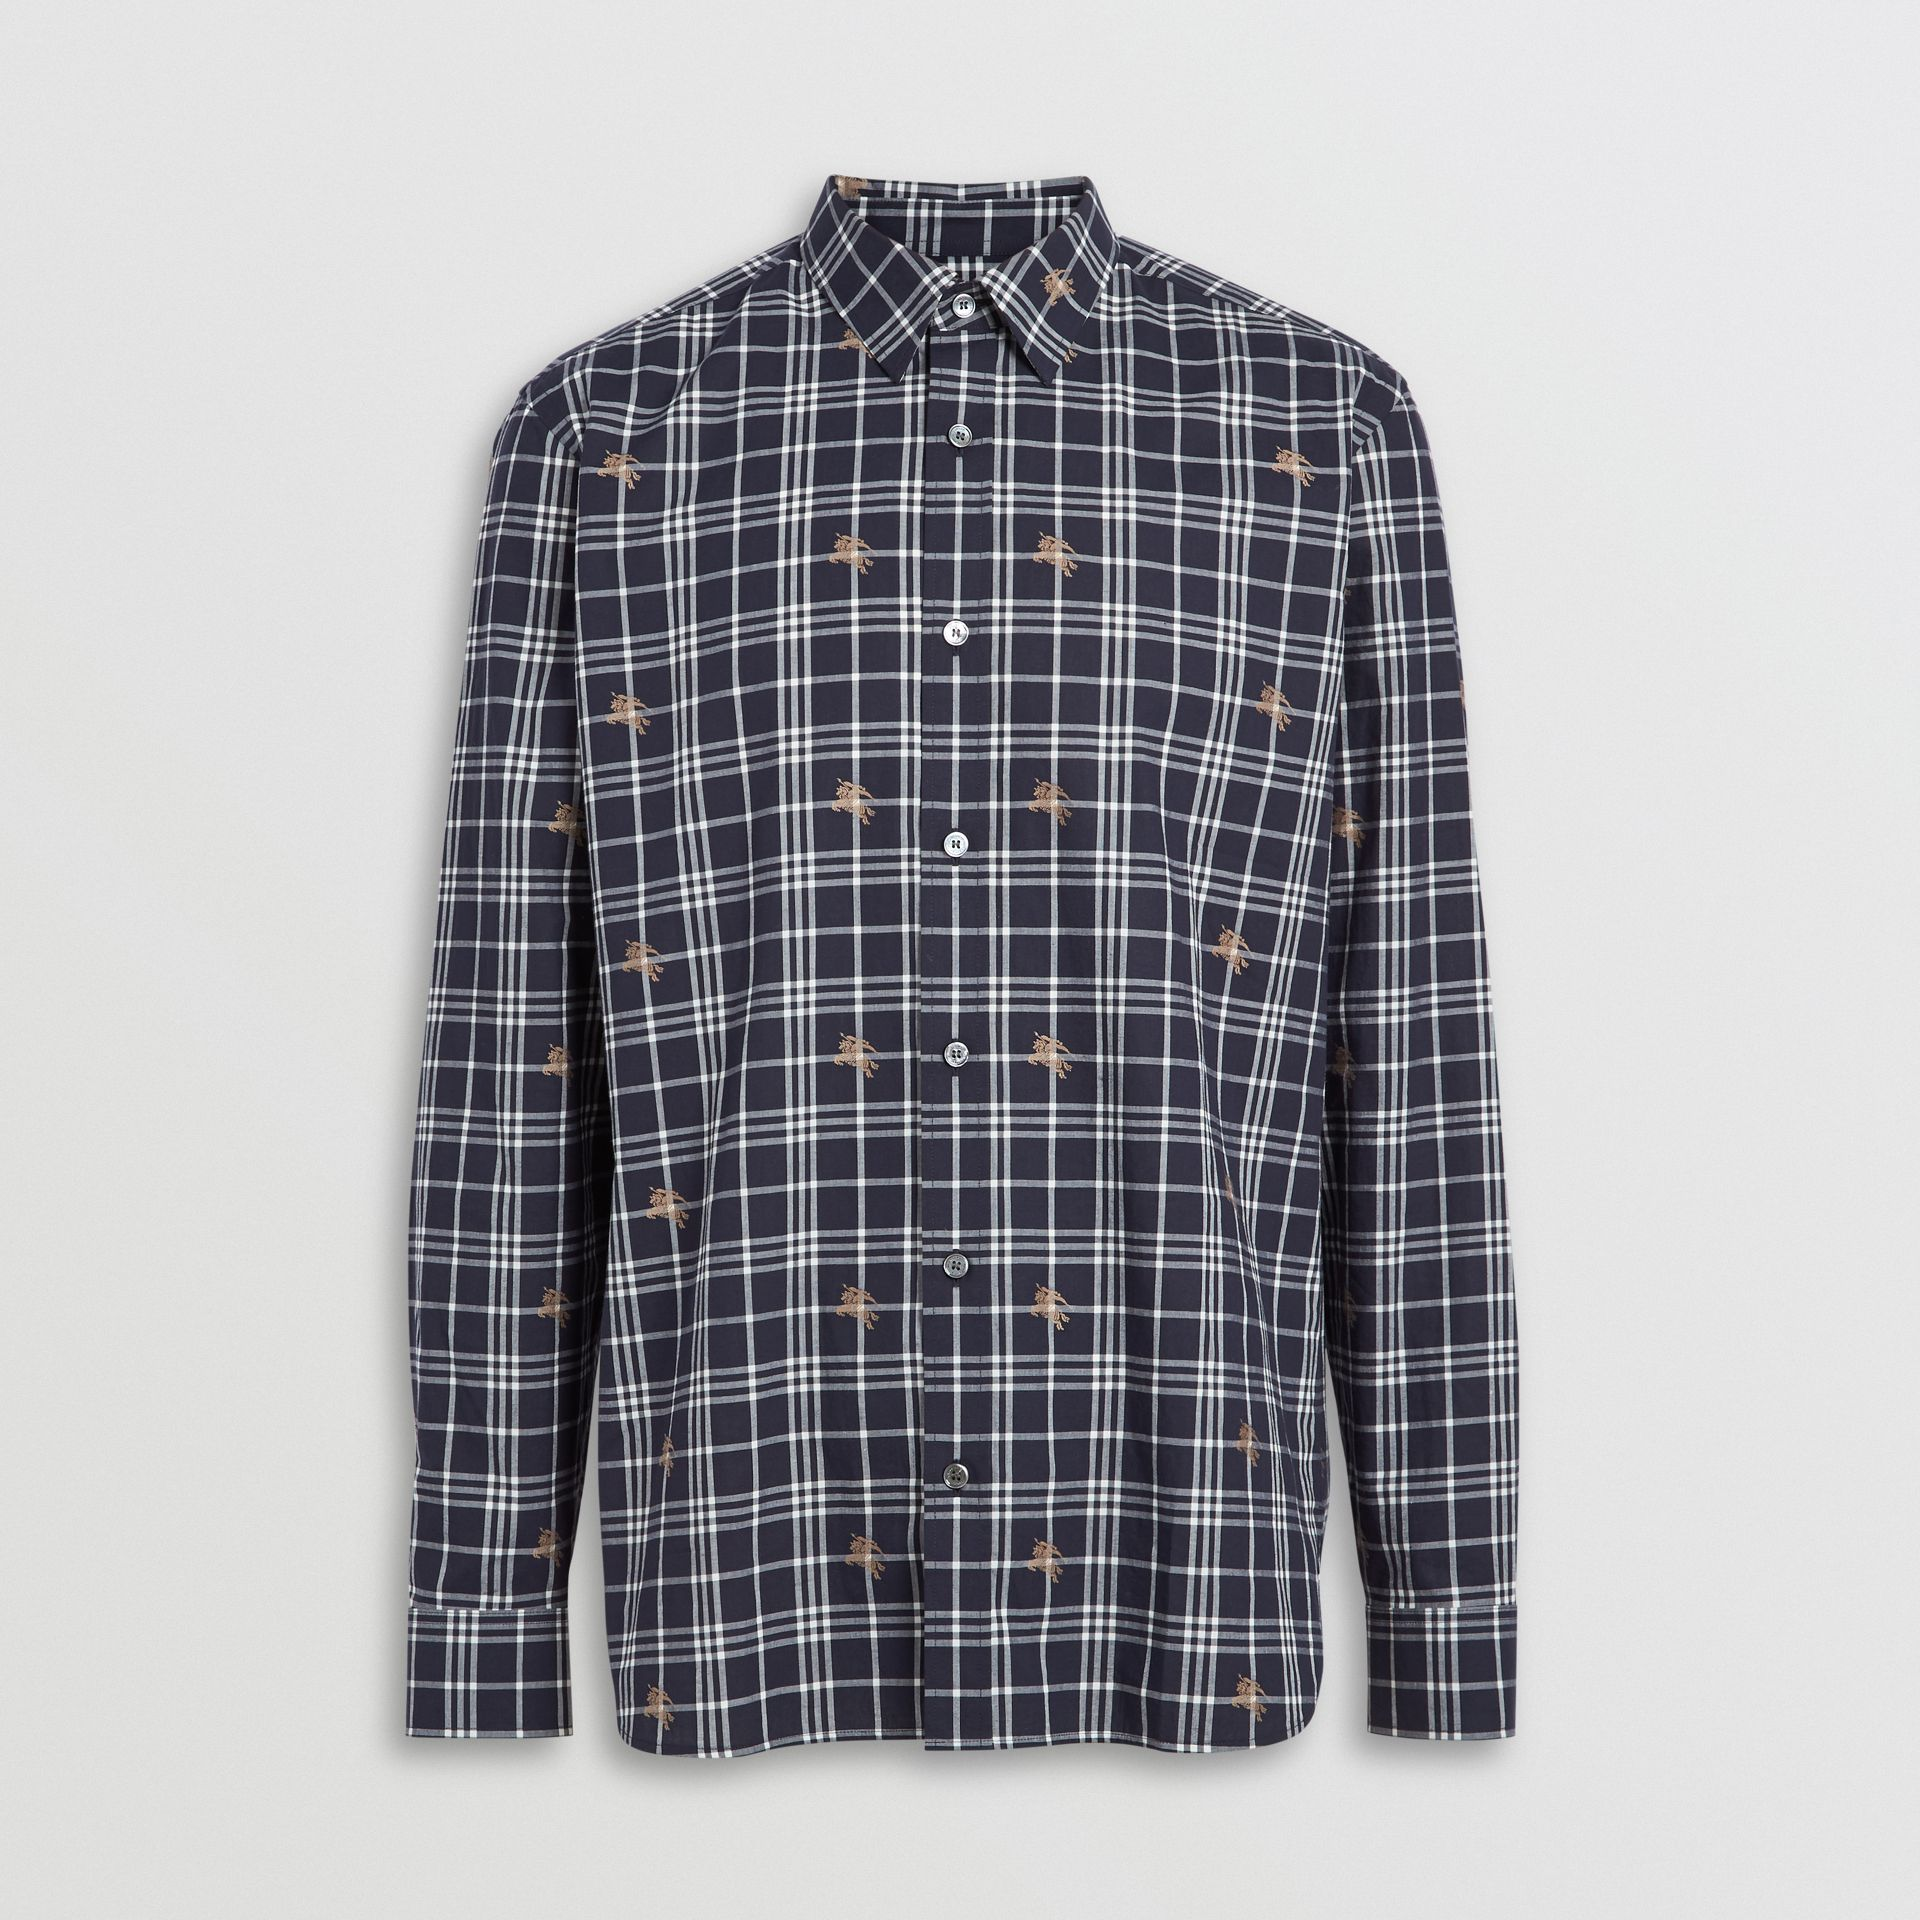 Equestrian Knight Check Cotton Shirt in Navy - Men | Burberry Australia - gallery image 3